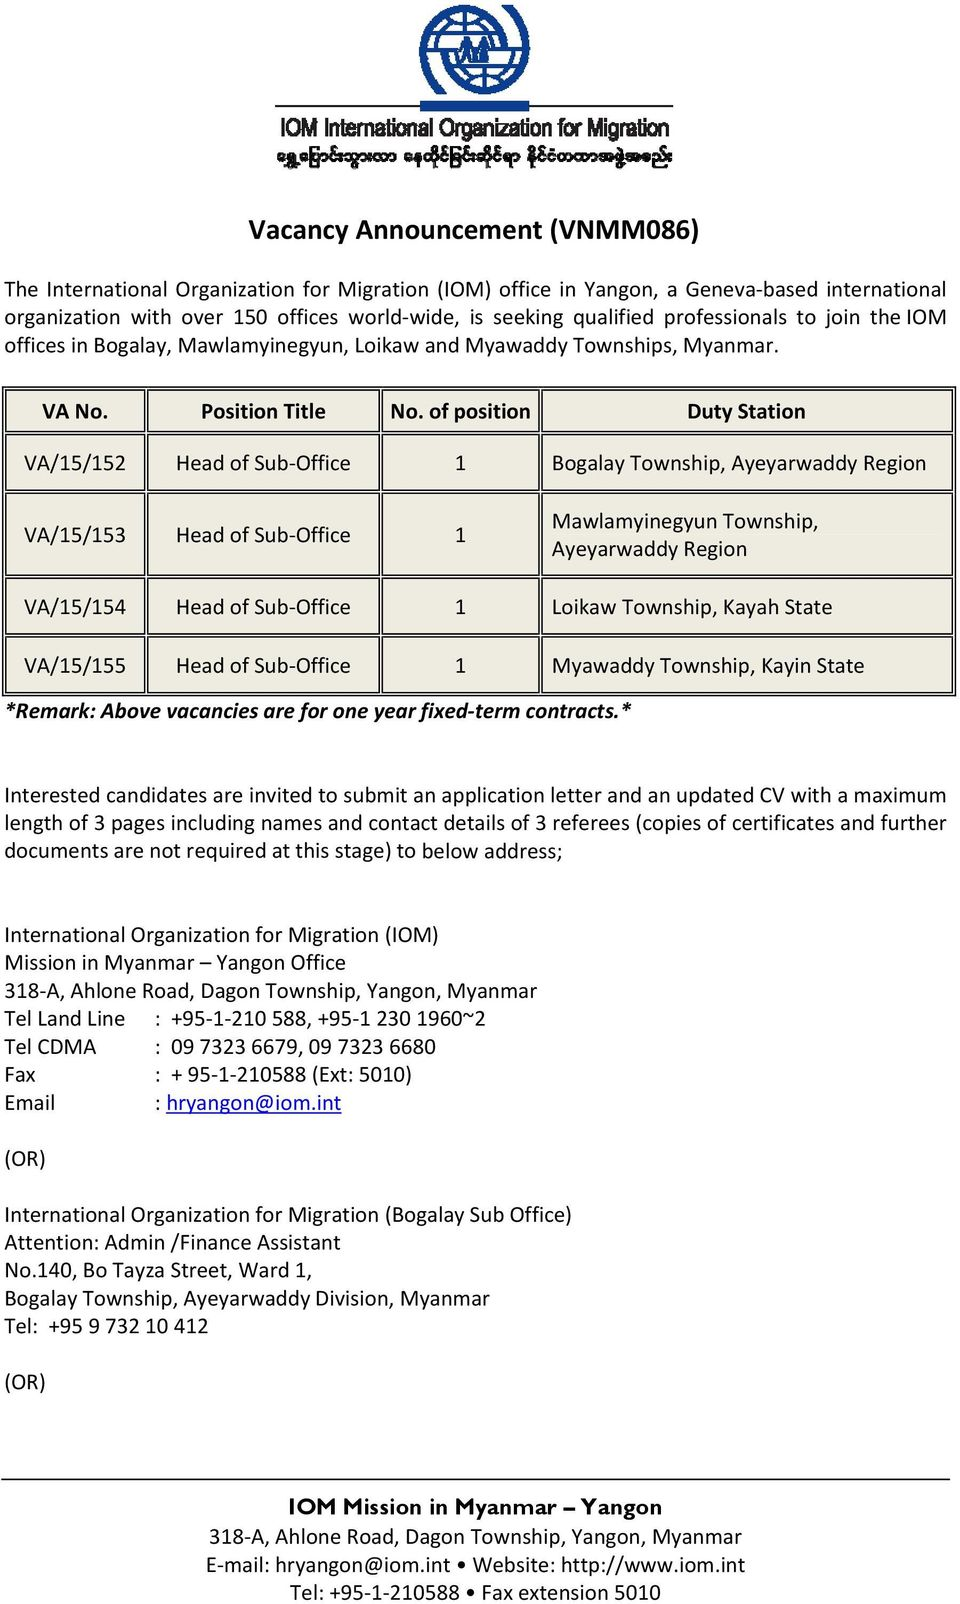 of position Duty Station VA/15/152 Head of Sub Office 1 Bogalay Township, Ayeyarwaddy Region VA/15/153 Head of Sub Office 1 Mawlamyinegyun Township, Ayeyarwaddy Region VA/15/154 Head of Sub Office 1